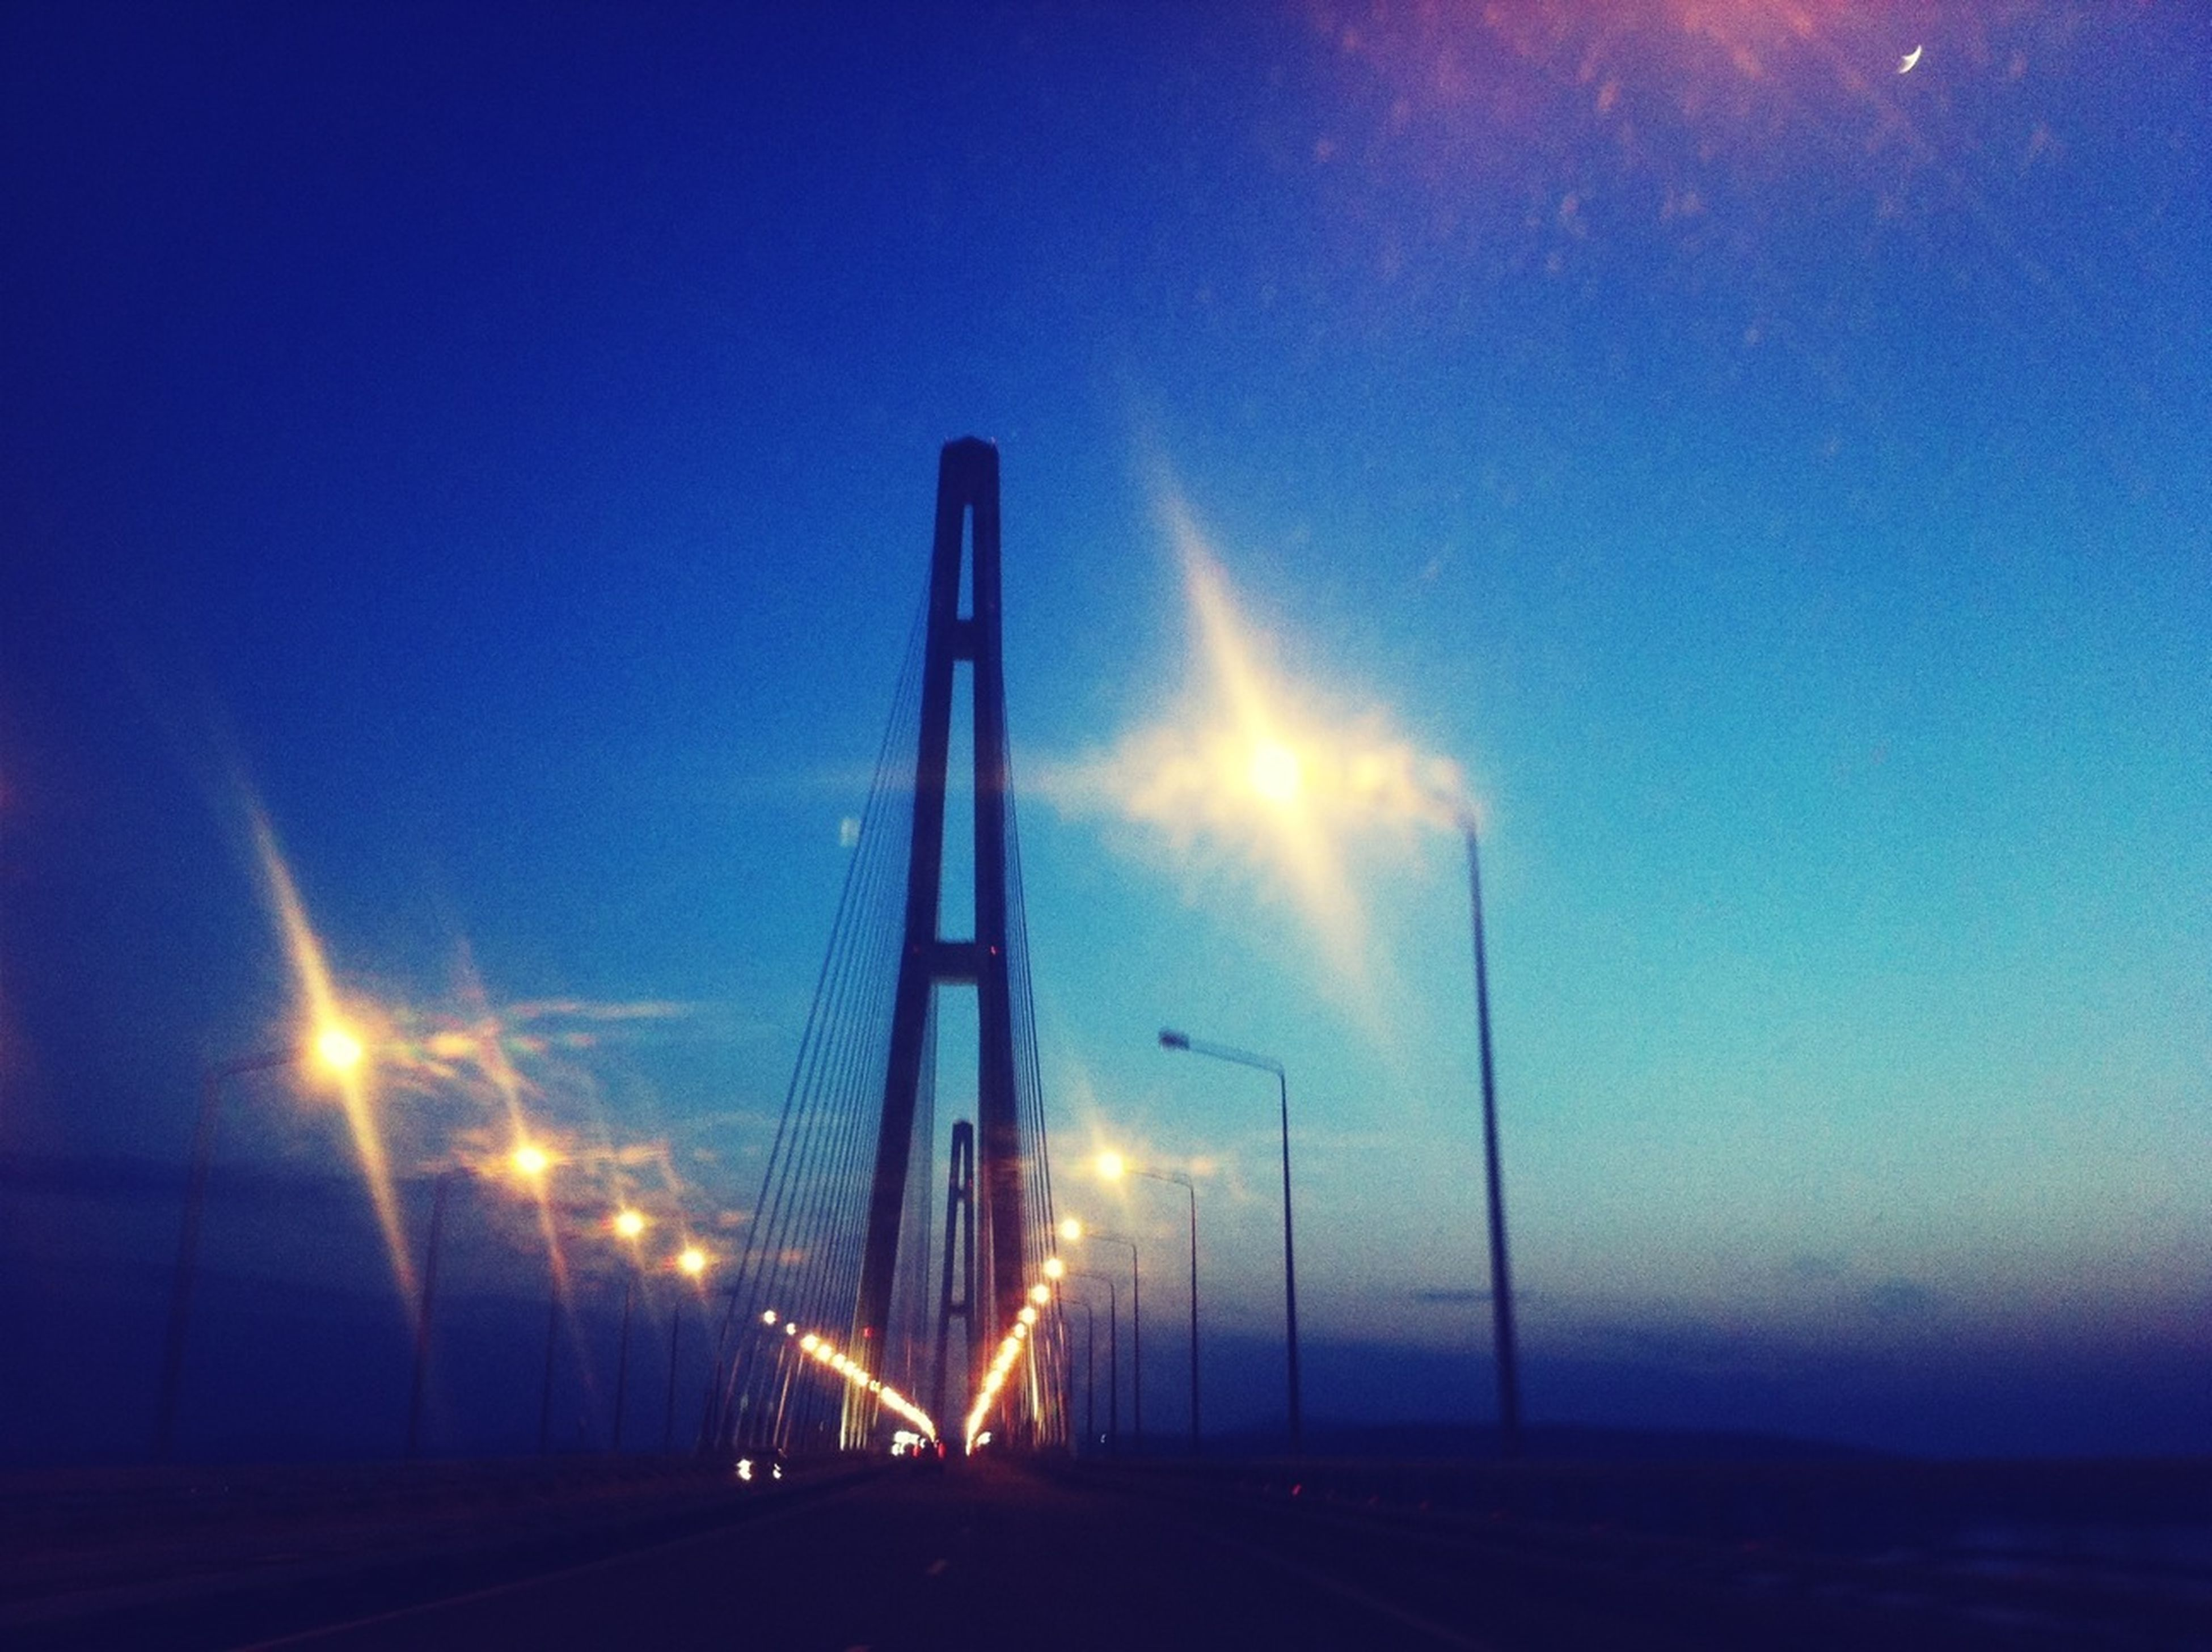 transportation, sky, connection, illuminated, road, blue, sunset, the way forward, suspension bridge, dusk, engineering, bridge - man made structure, built structure, street light, night, outdoors, nature, no people, lens flare, mode of transport